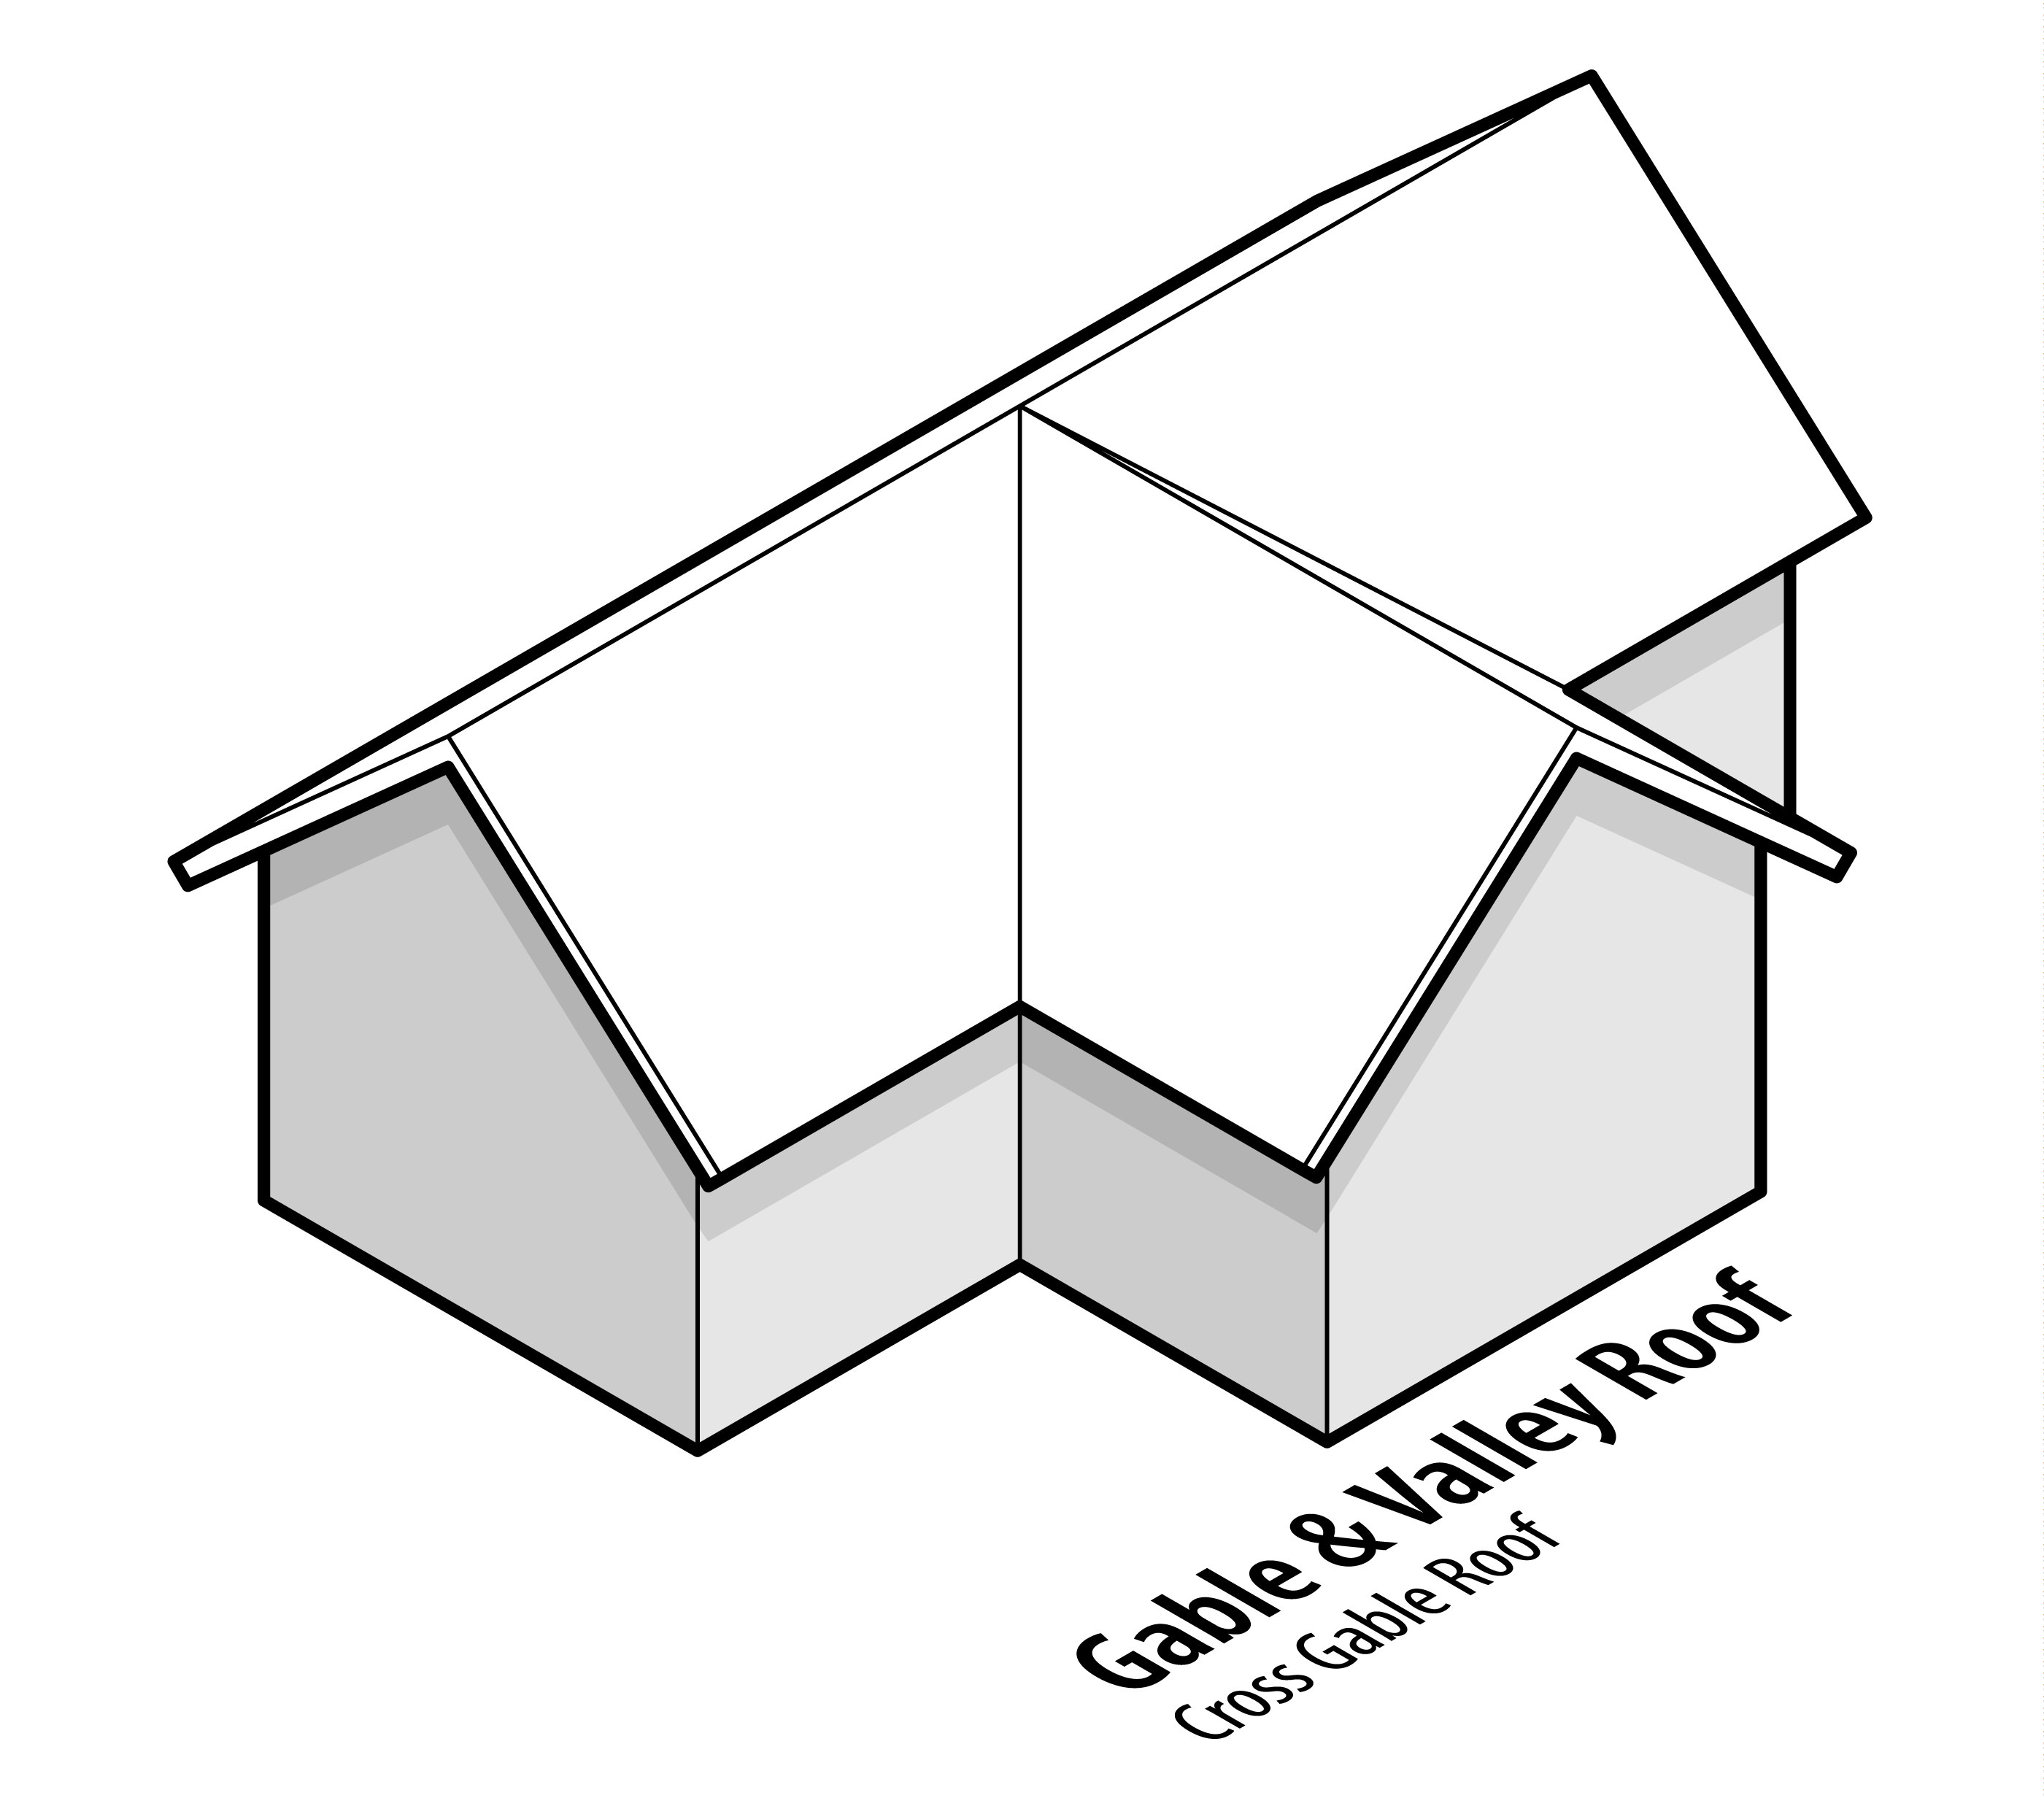 Cross Gable Roof Design  sc 1 st  Home Stratosphere & 15 Types of Home Roof Designs (with Illustrations) memphite.com